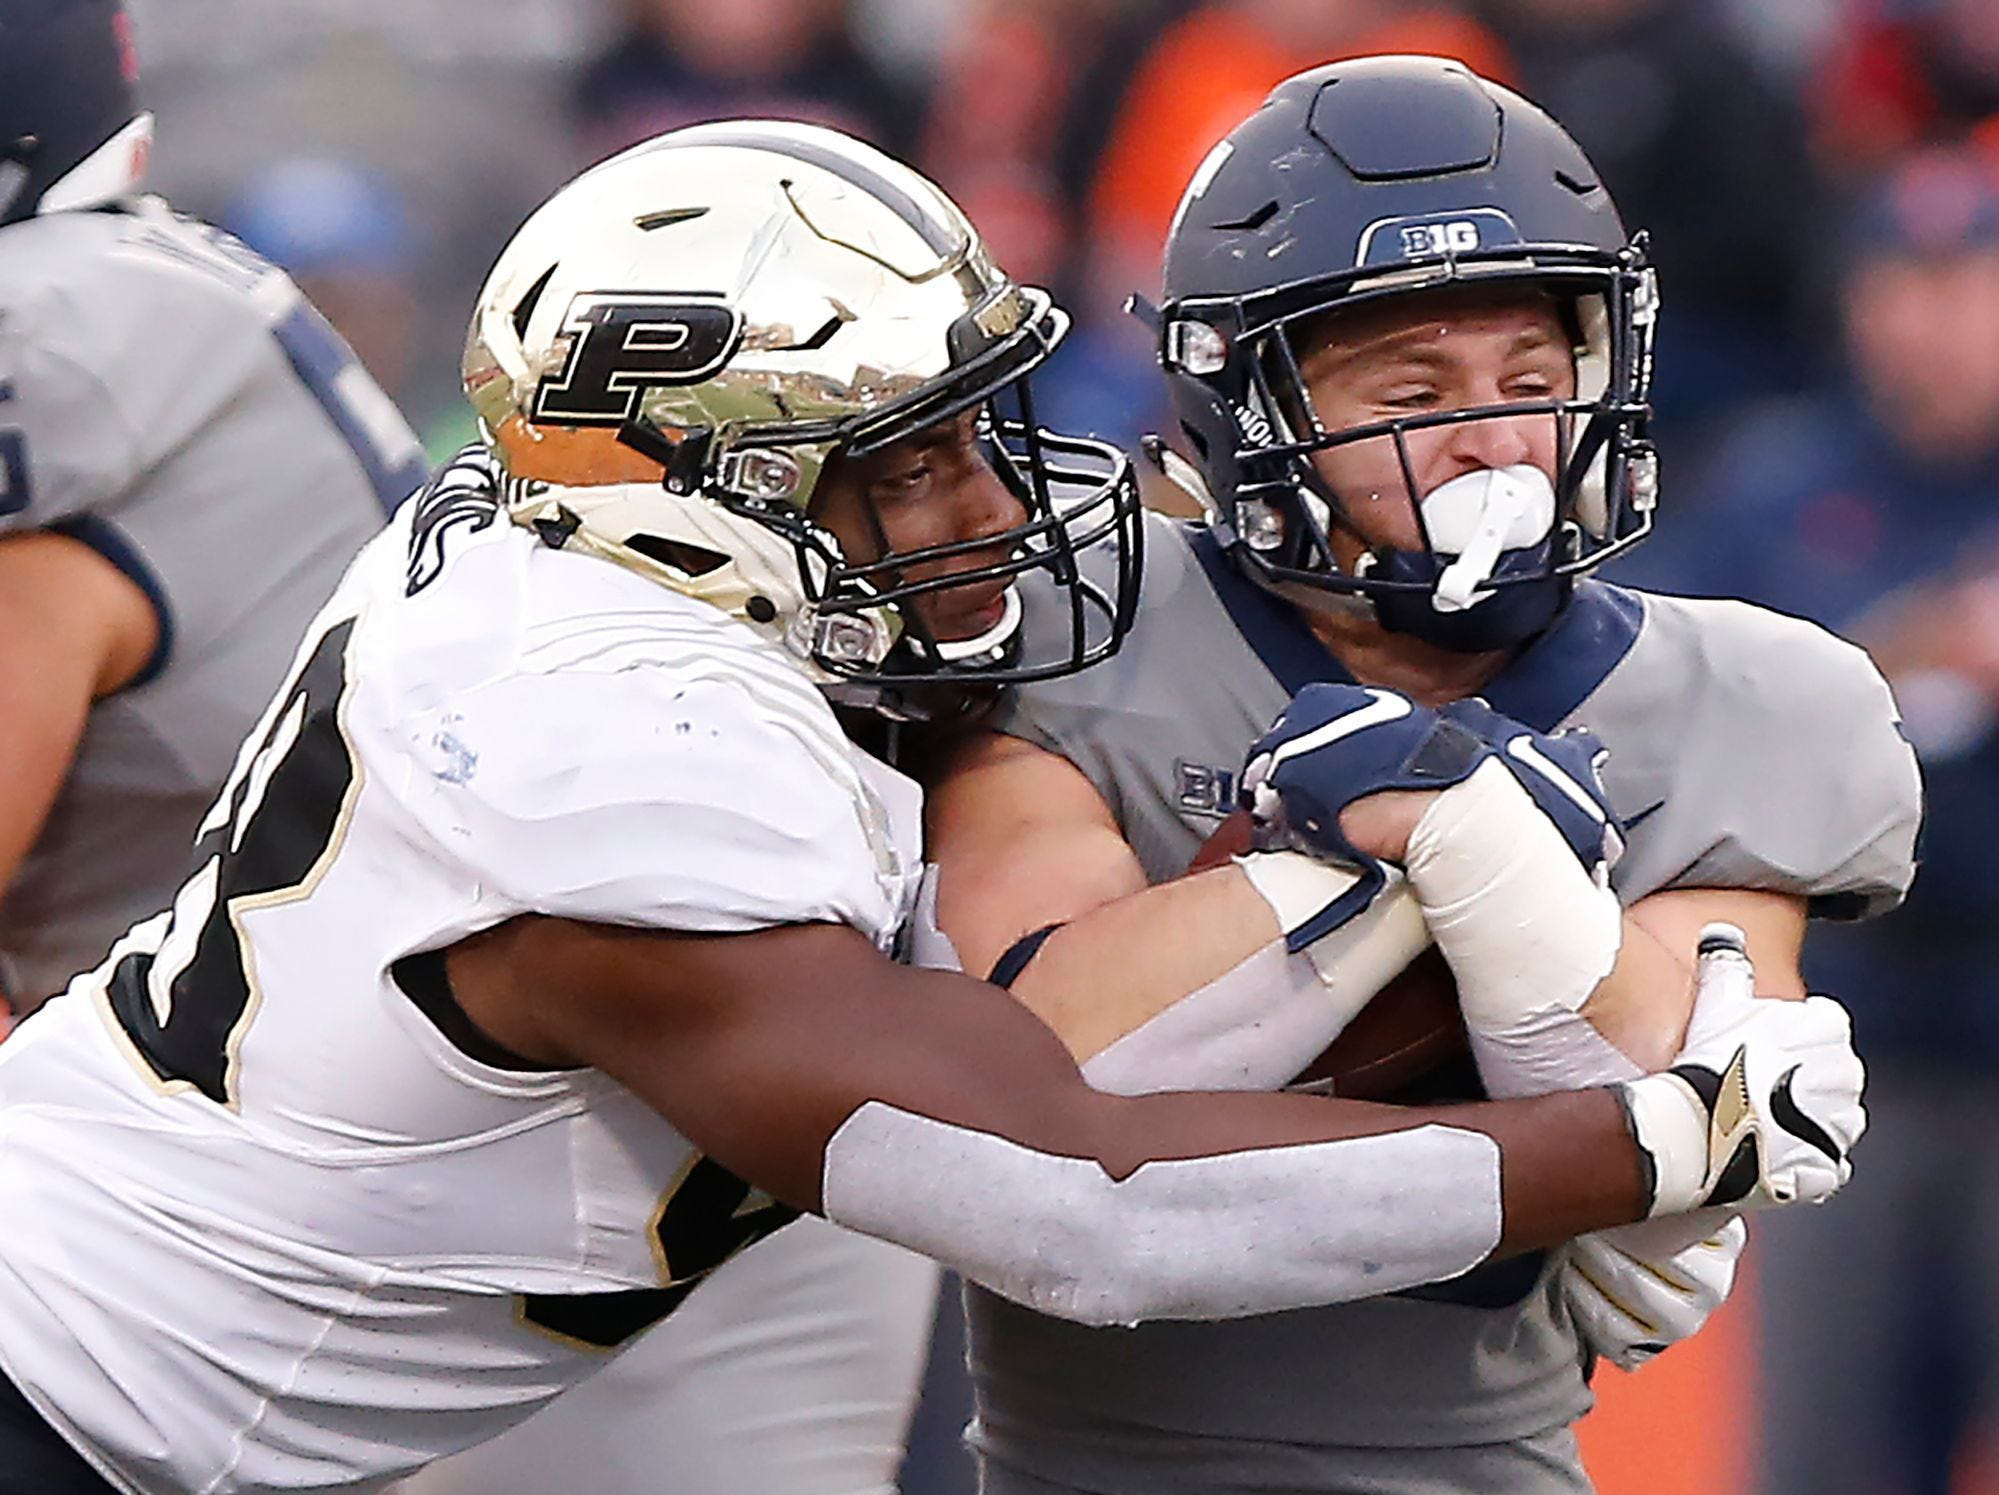 Purdue defensive end Kai Higgins brings down Mike Epstein of Illinois during the Boilermakers? 46-7 victory.